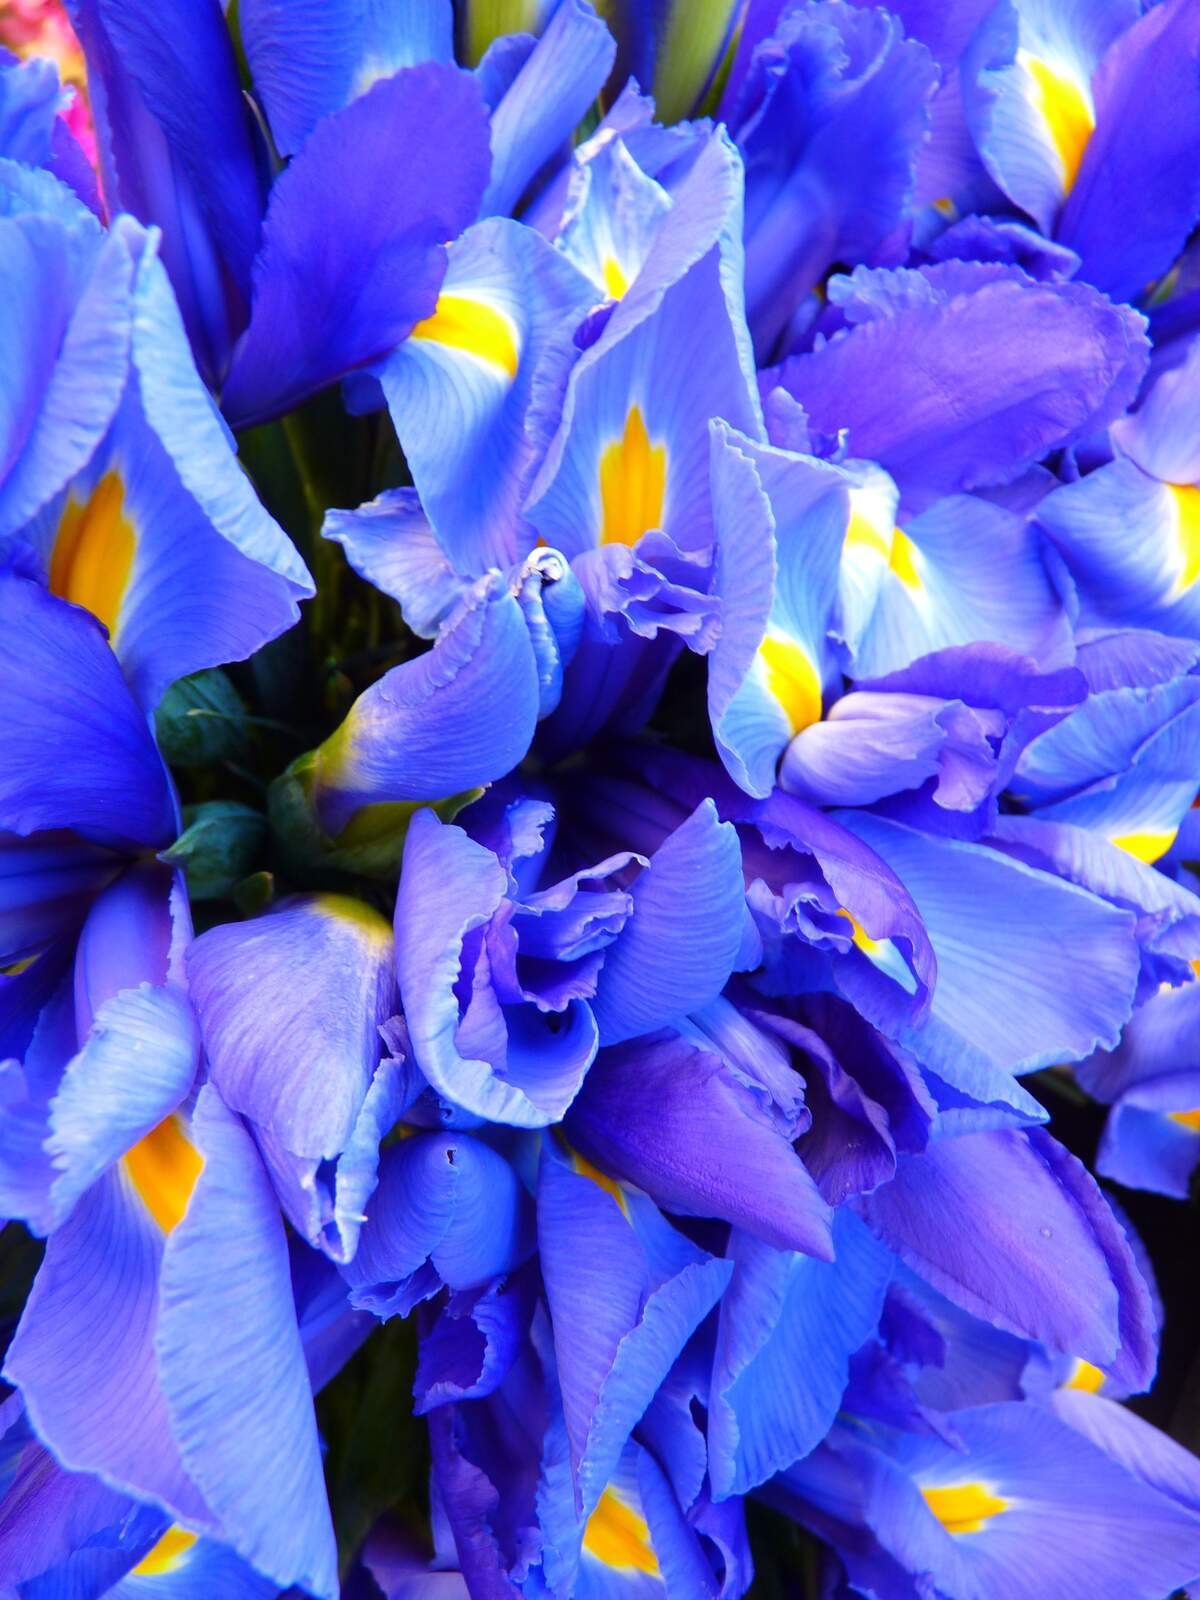 Image for Iris Day